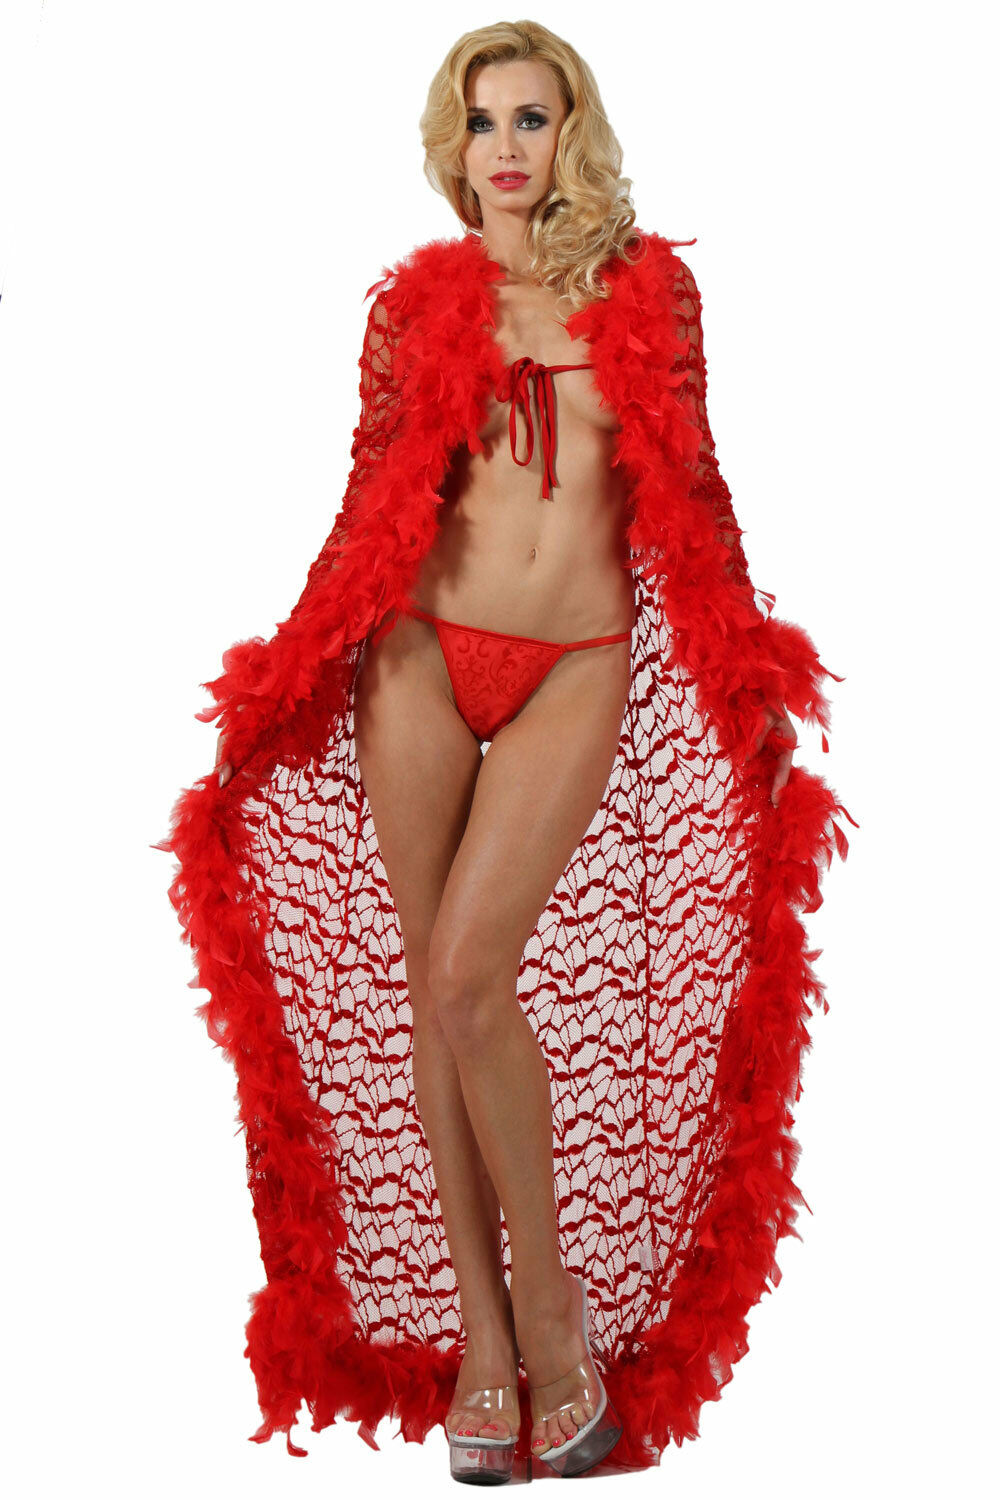 adc7d93969b bathrobe dress gown burlesque pinup red feathers sexy lace Undressed  dressing nuldrr17535-Nightwear